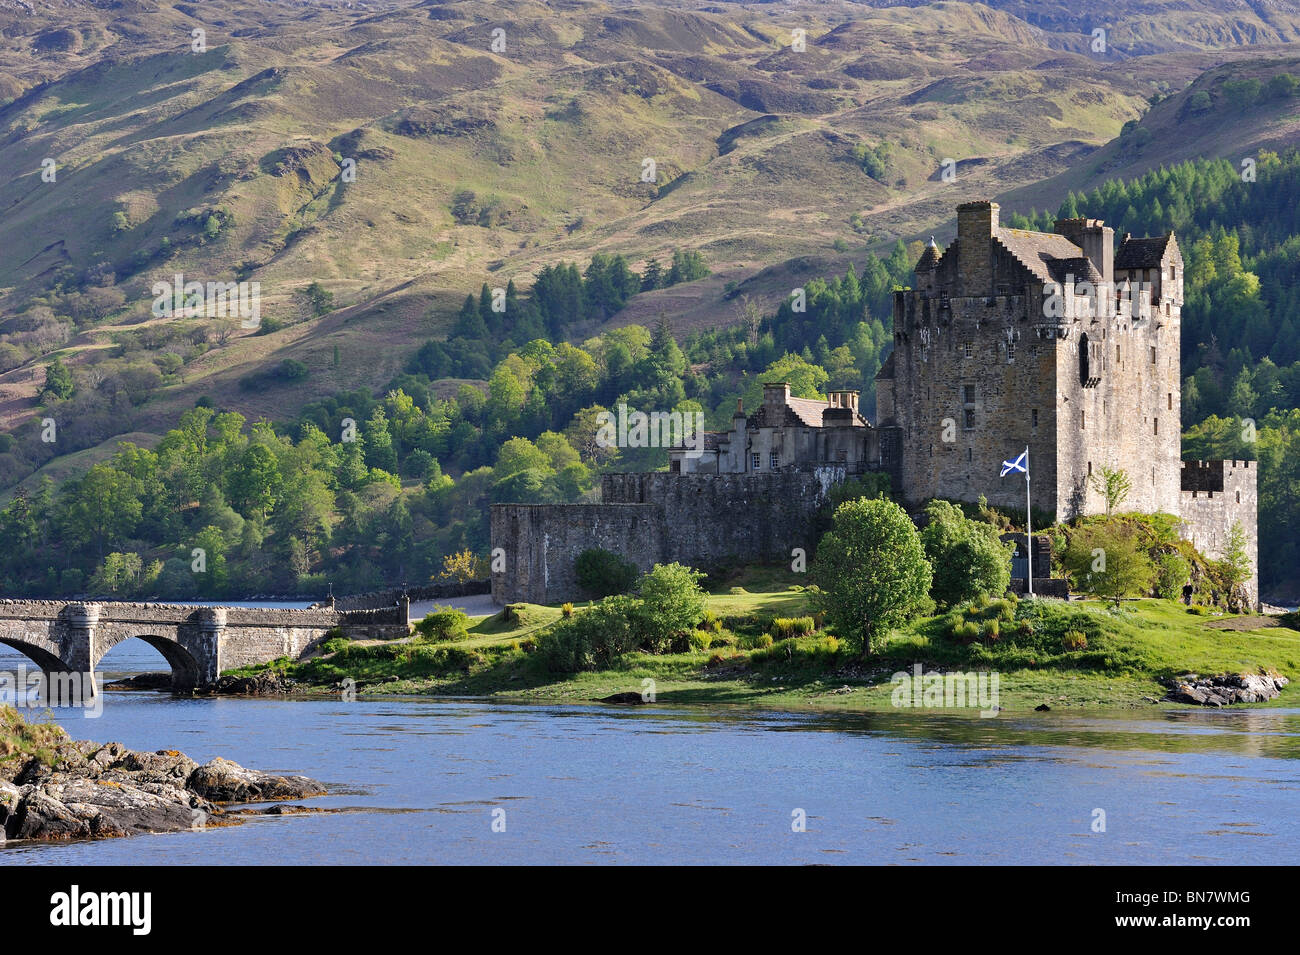 Eilean Donan Castle in Loch Duich in the Western Highlands of Scotland, UK - Stock Image